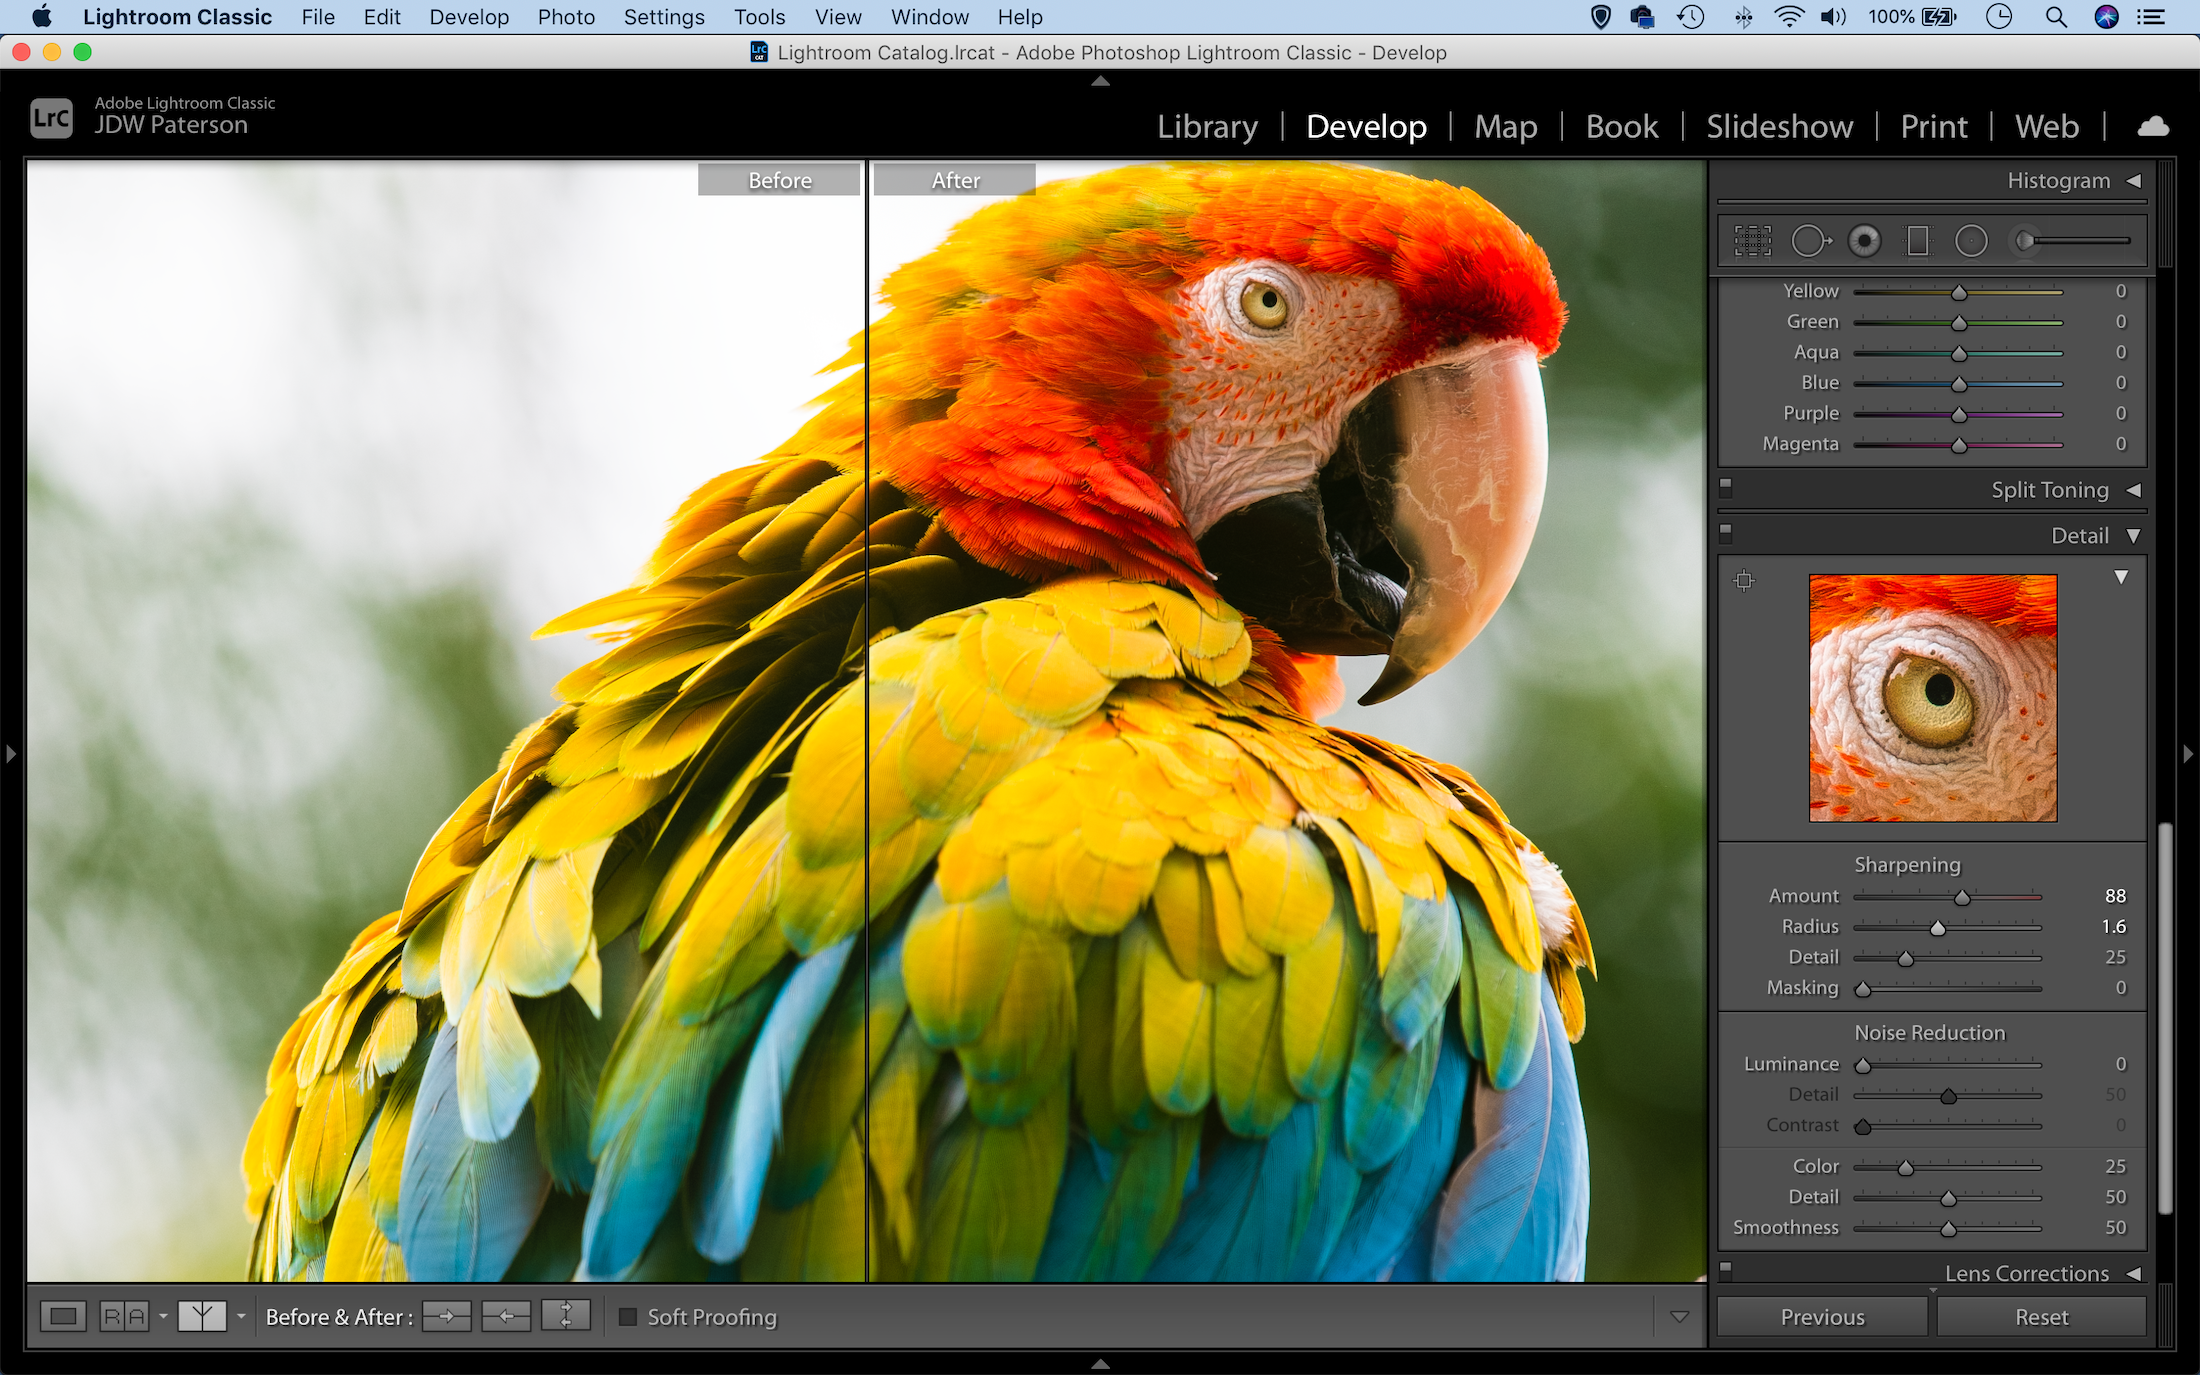 Before and after comparison with the sharpening tool in Lightroom